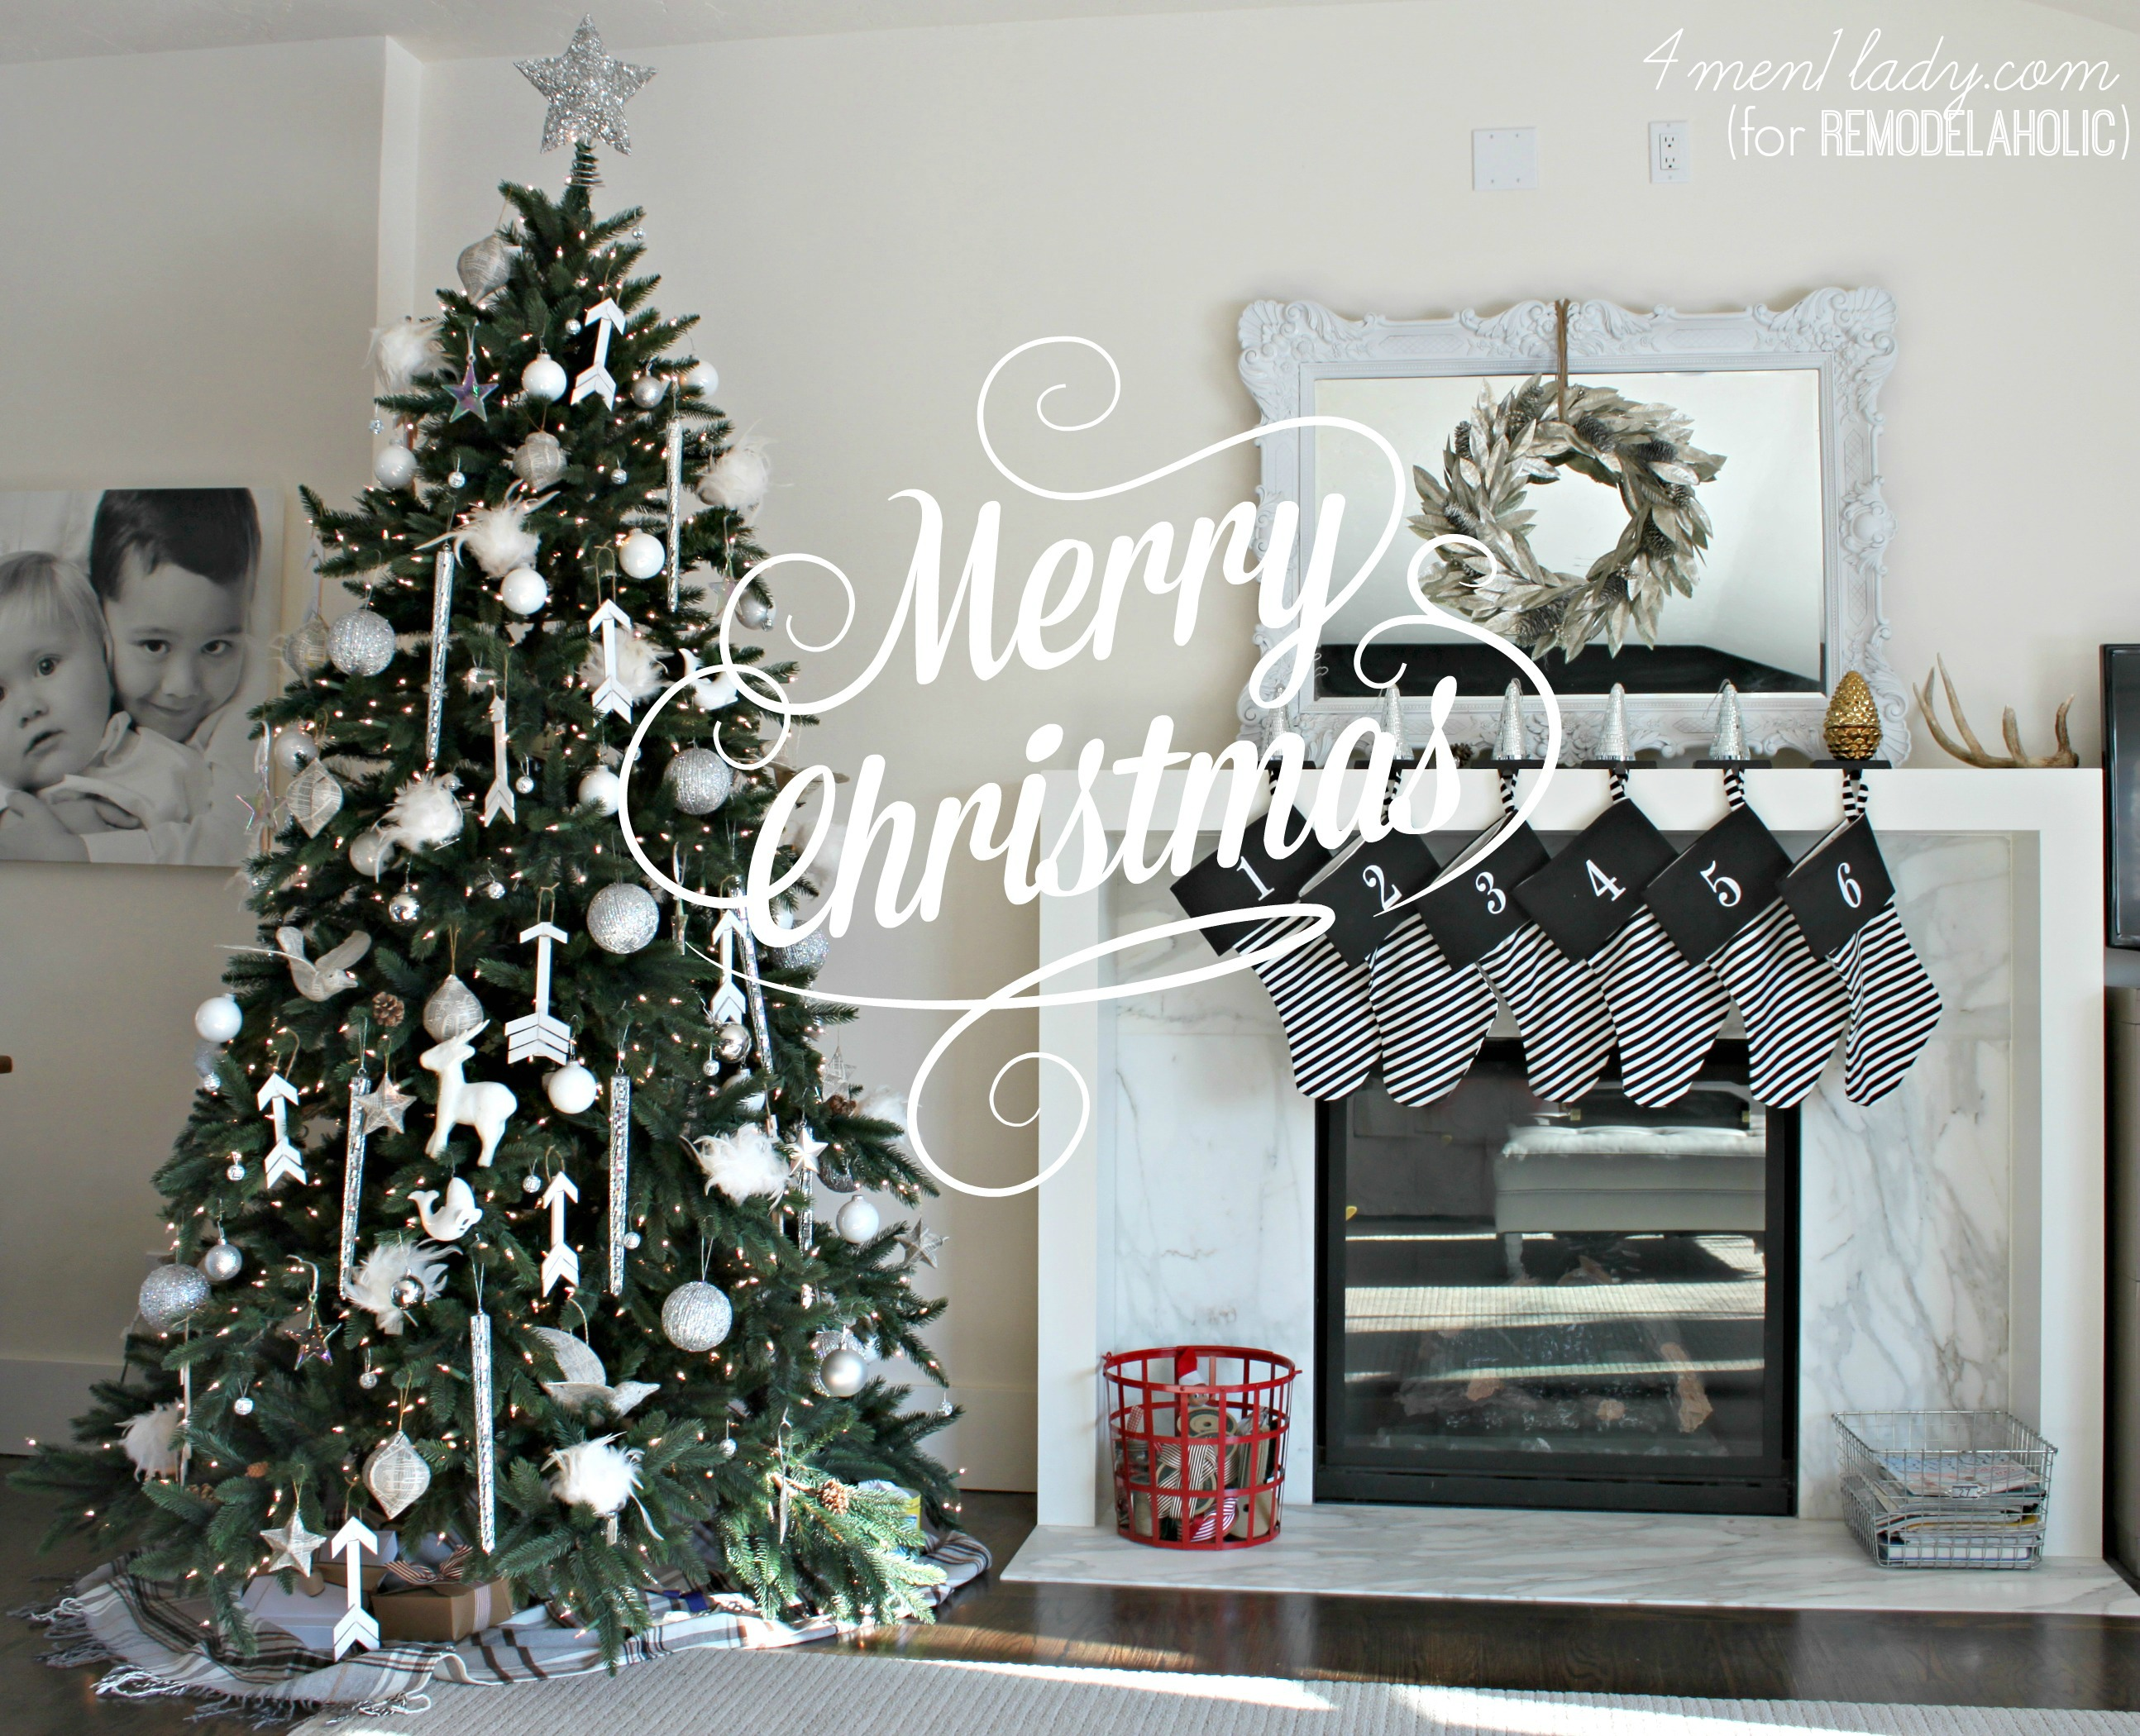 classic white Christmas | 4men1lady for Remodelaholic.com